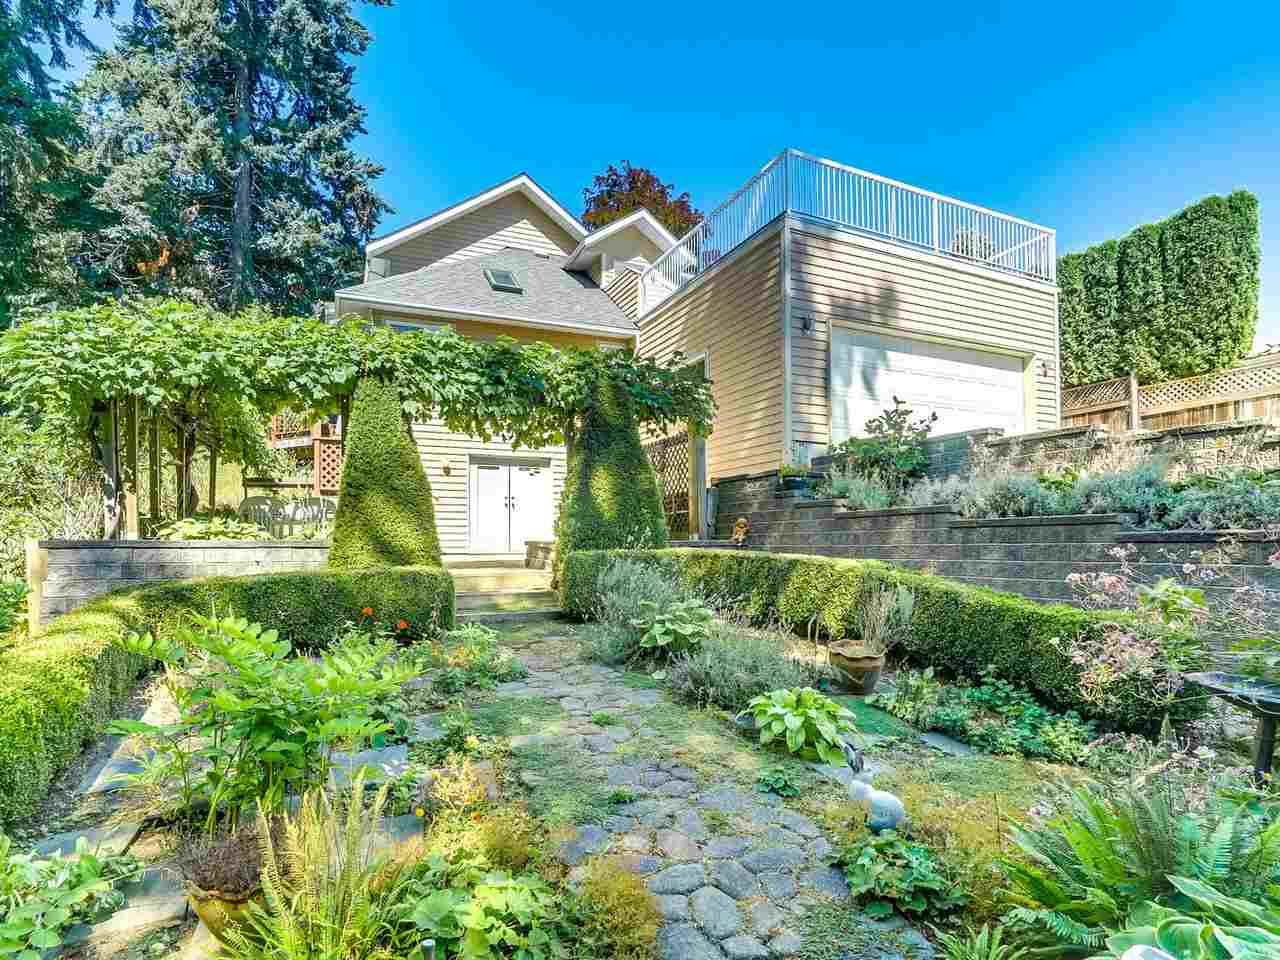 Photo 18: Photos: 1788 GORDON Avenue in West Vancouver: Ambleside House for sale : MLS®# R2207715